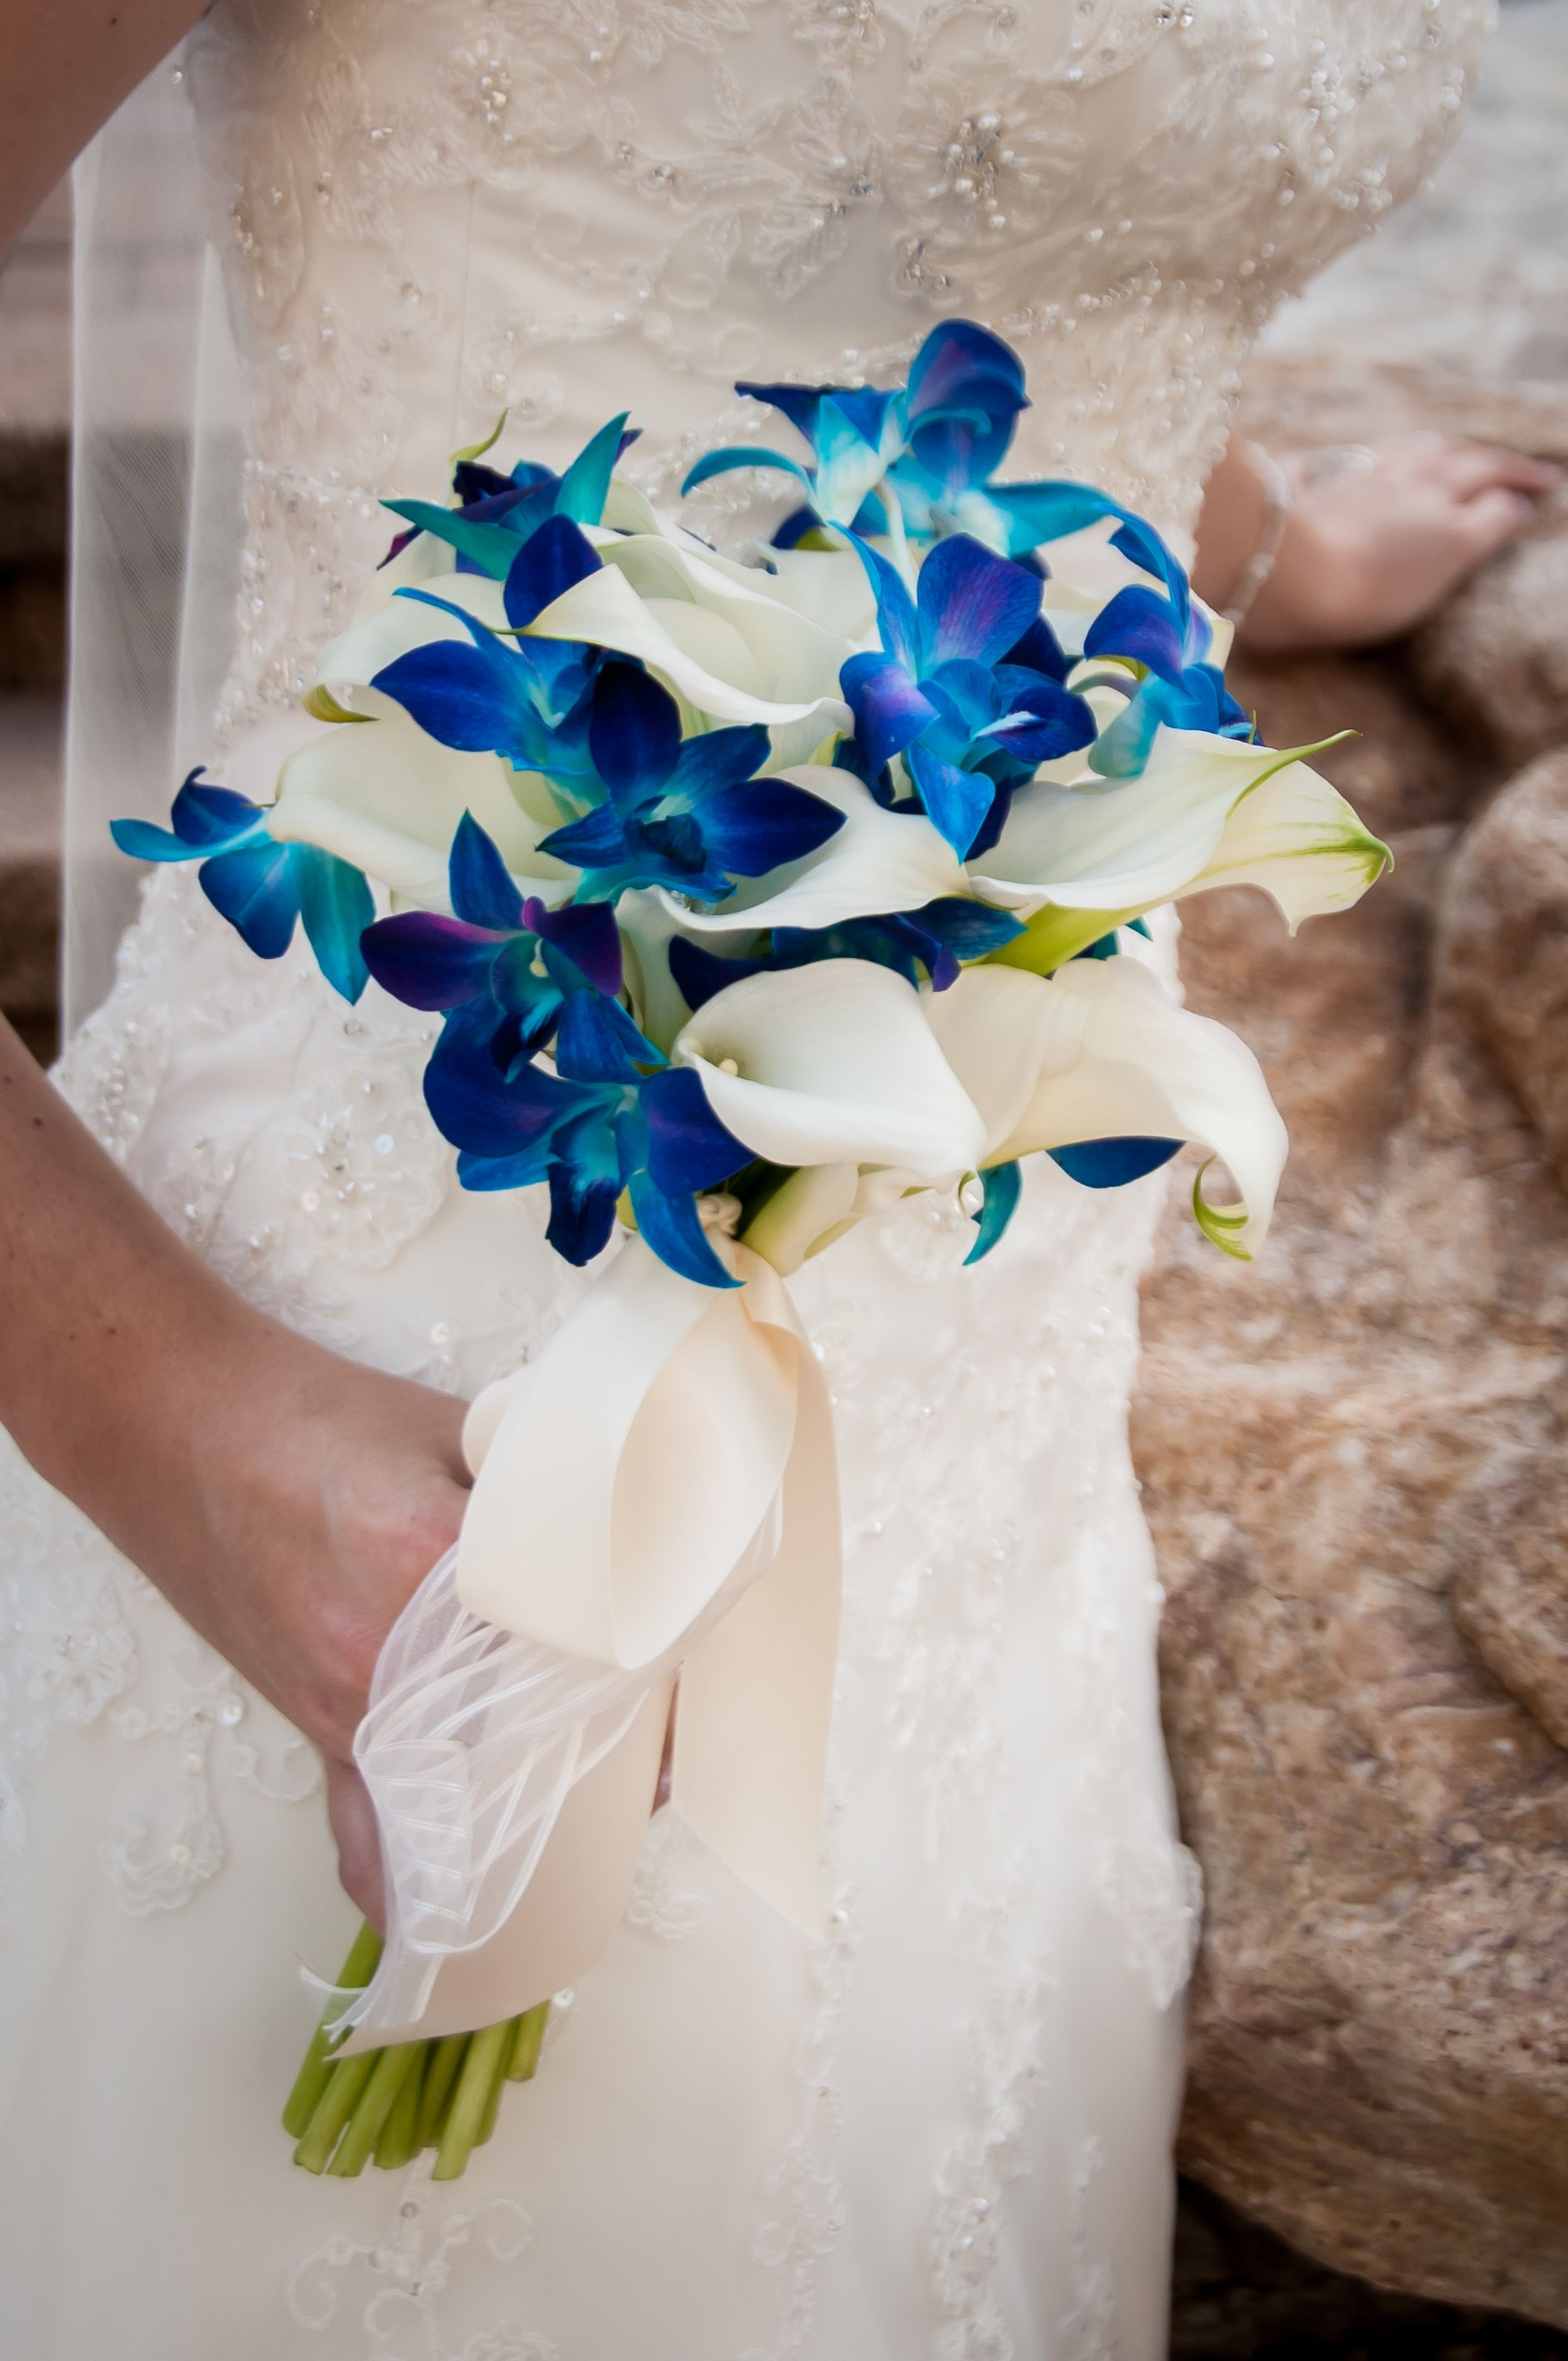 52 stylish and eye catching calla wedding bouquets gifts blue wedding flower bouquet bridal bouquet wedding flowers add pic source on comment and we will update it myfloweraffair can create this izmirmasajfo